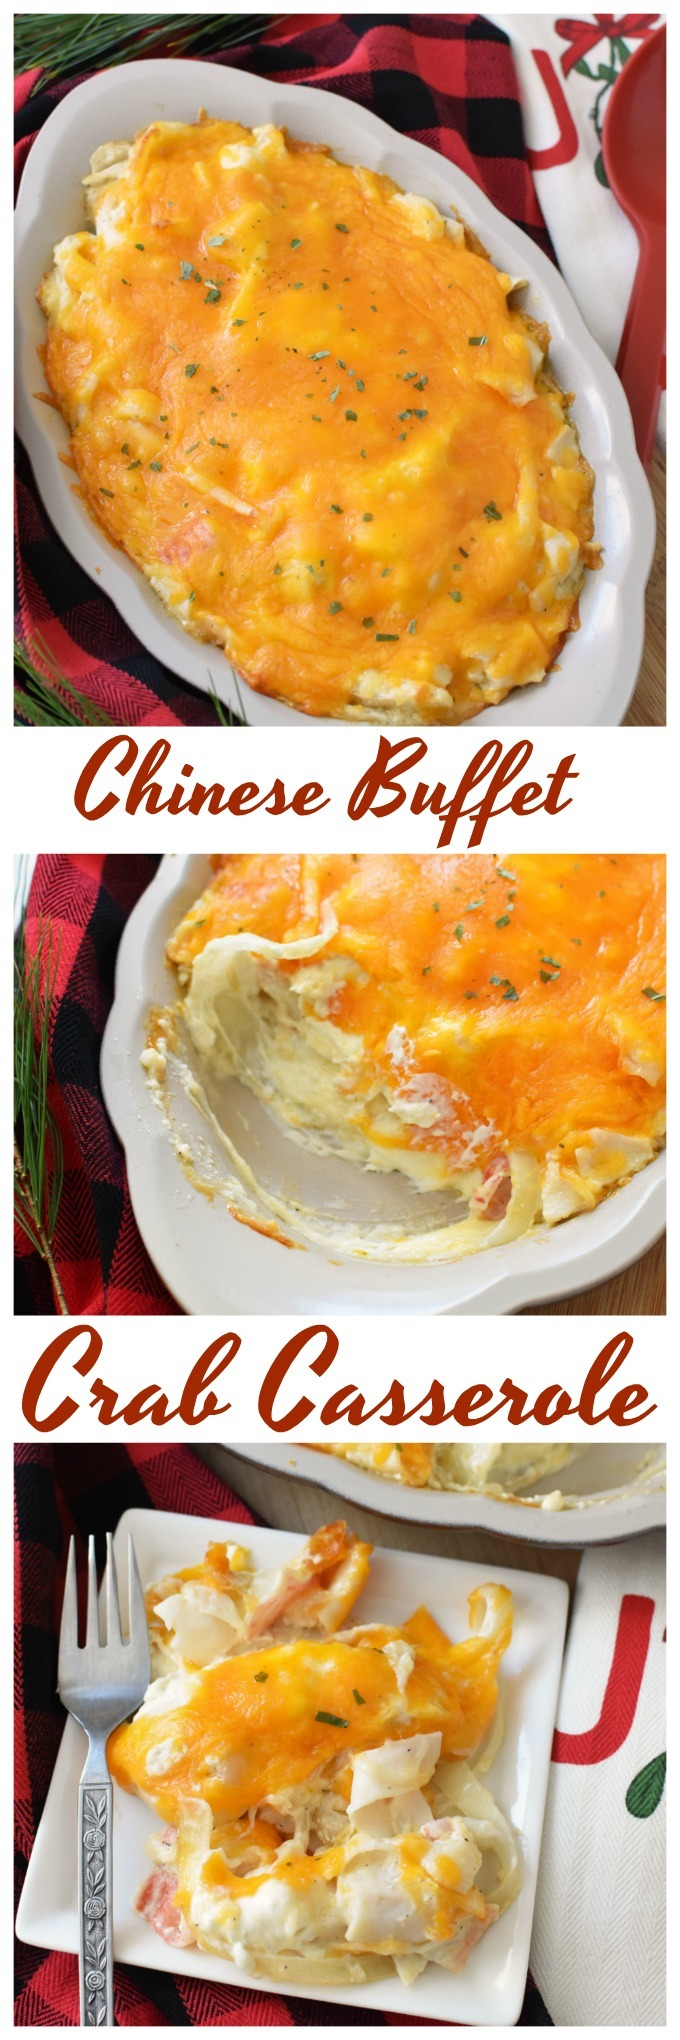 Crab Casserole Recipe- Just like the one from Chinese Buffets